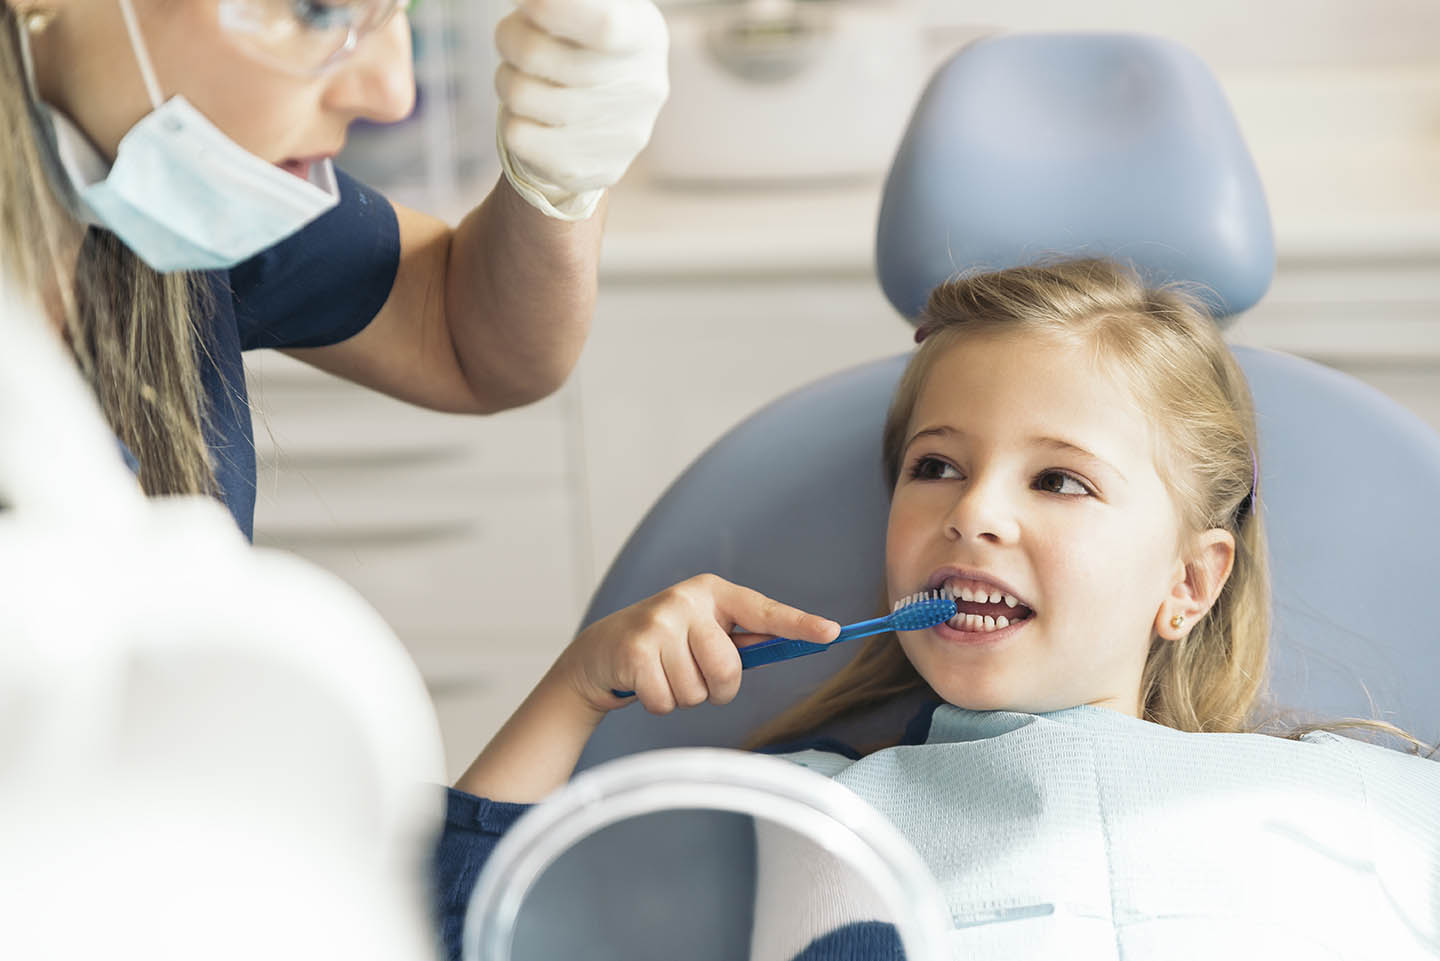 Hygienist cleaning child's teeth